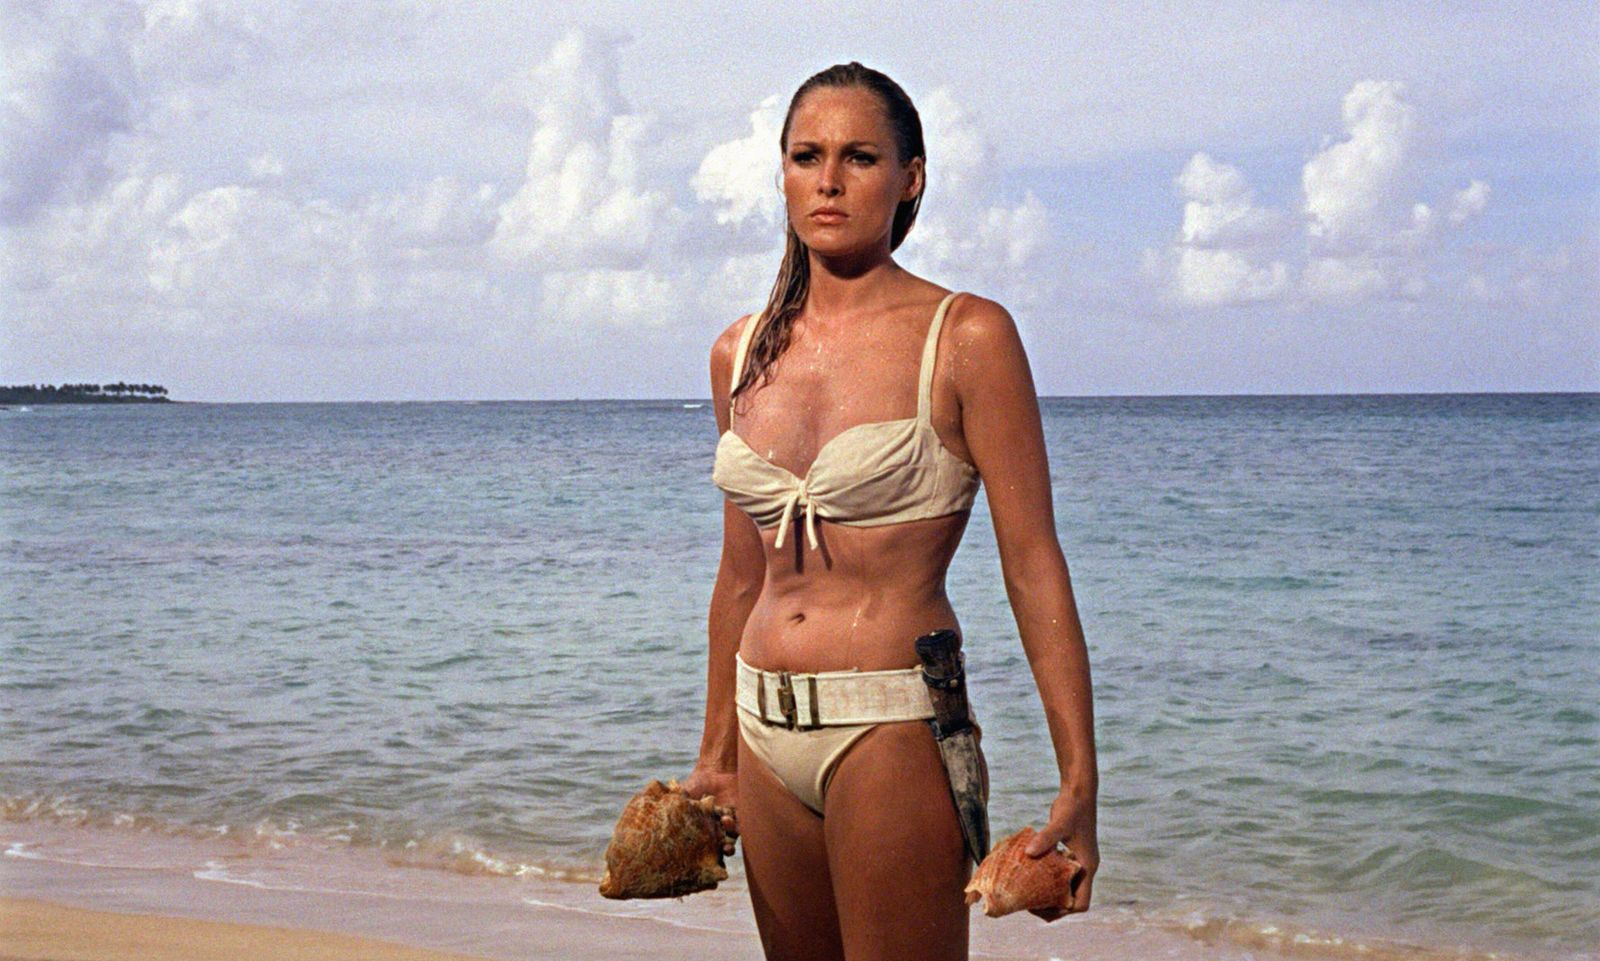 JAMES BOND CONTRE LE DR NO DR NO 1962 de Terence Young Ursula Andress. d apres le roman de Ian Fleming, James Bond 007